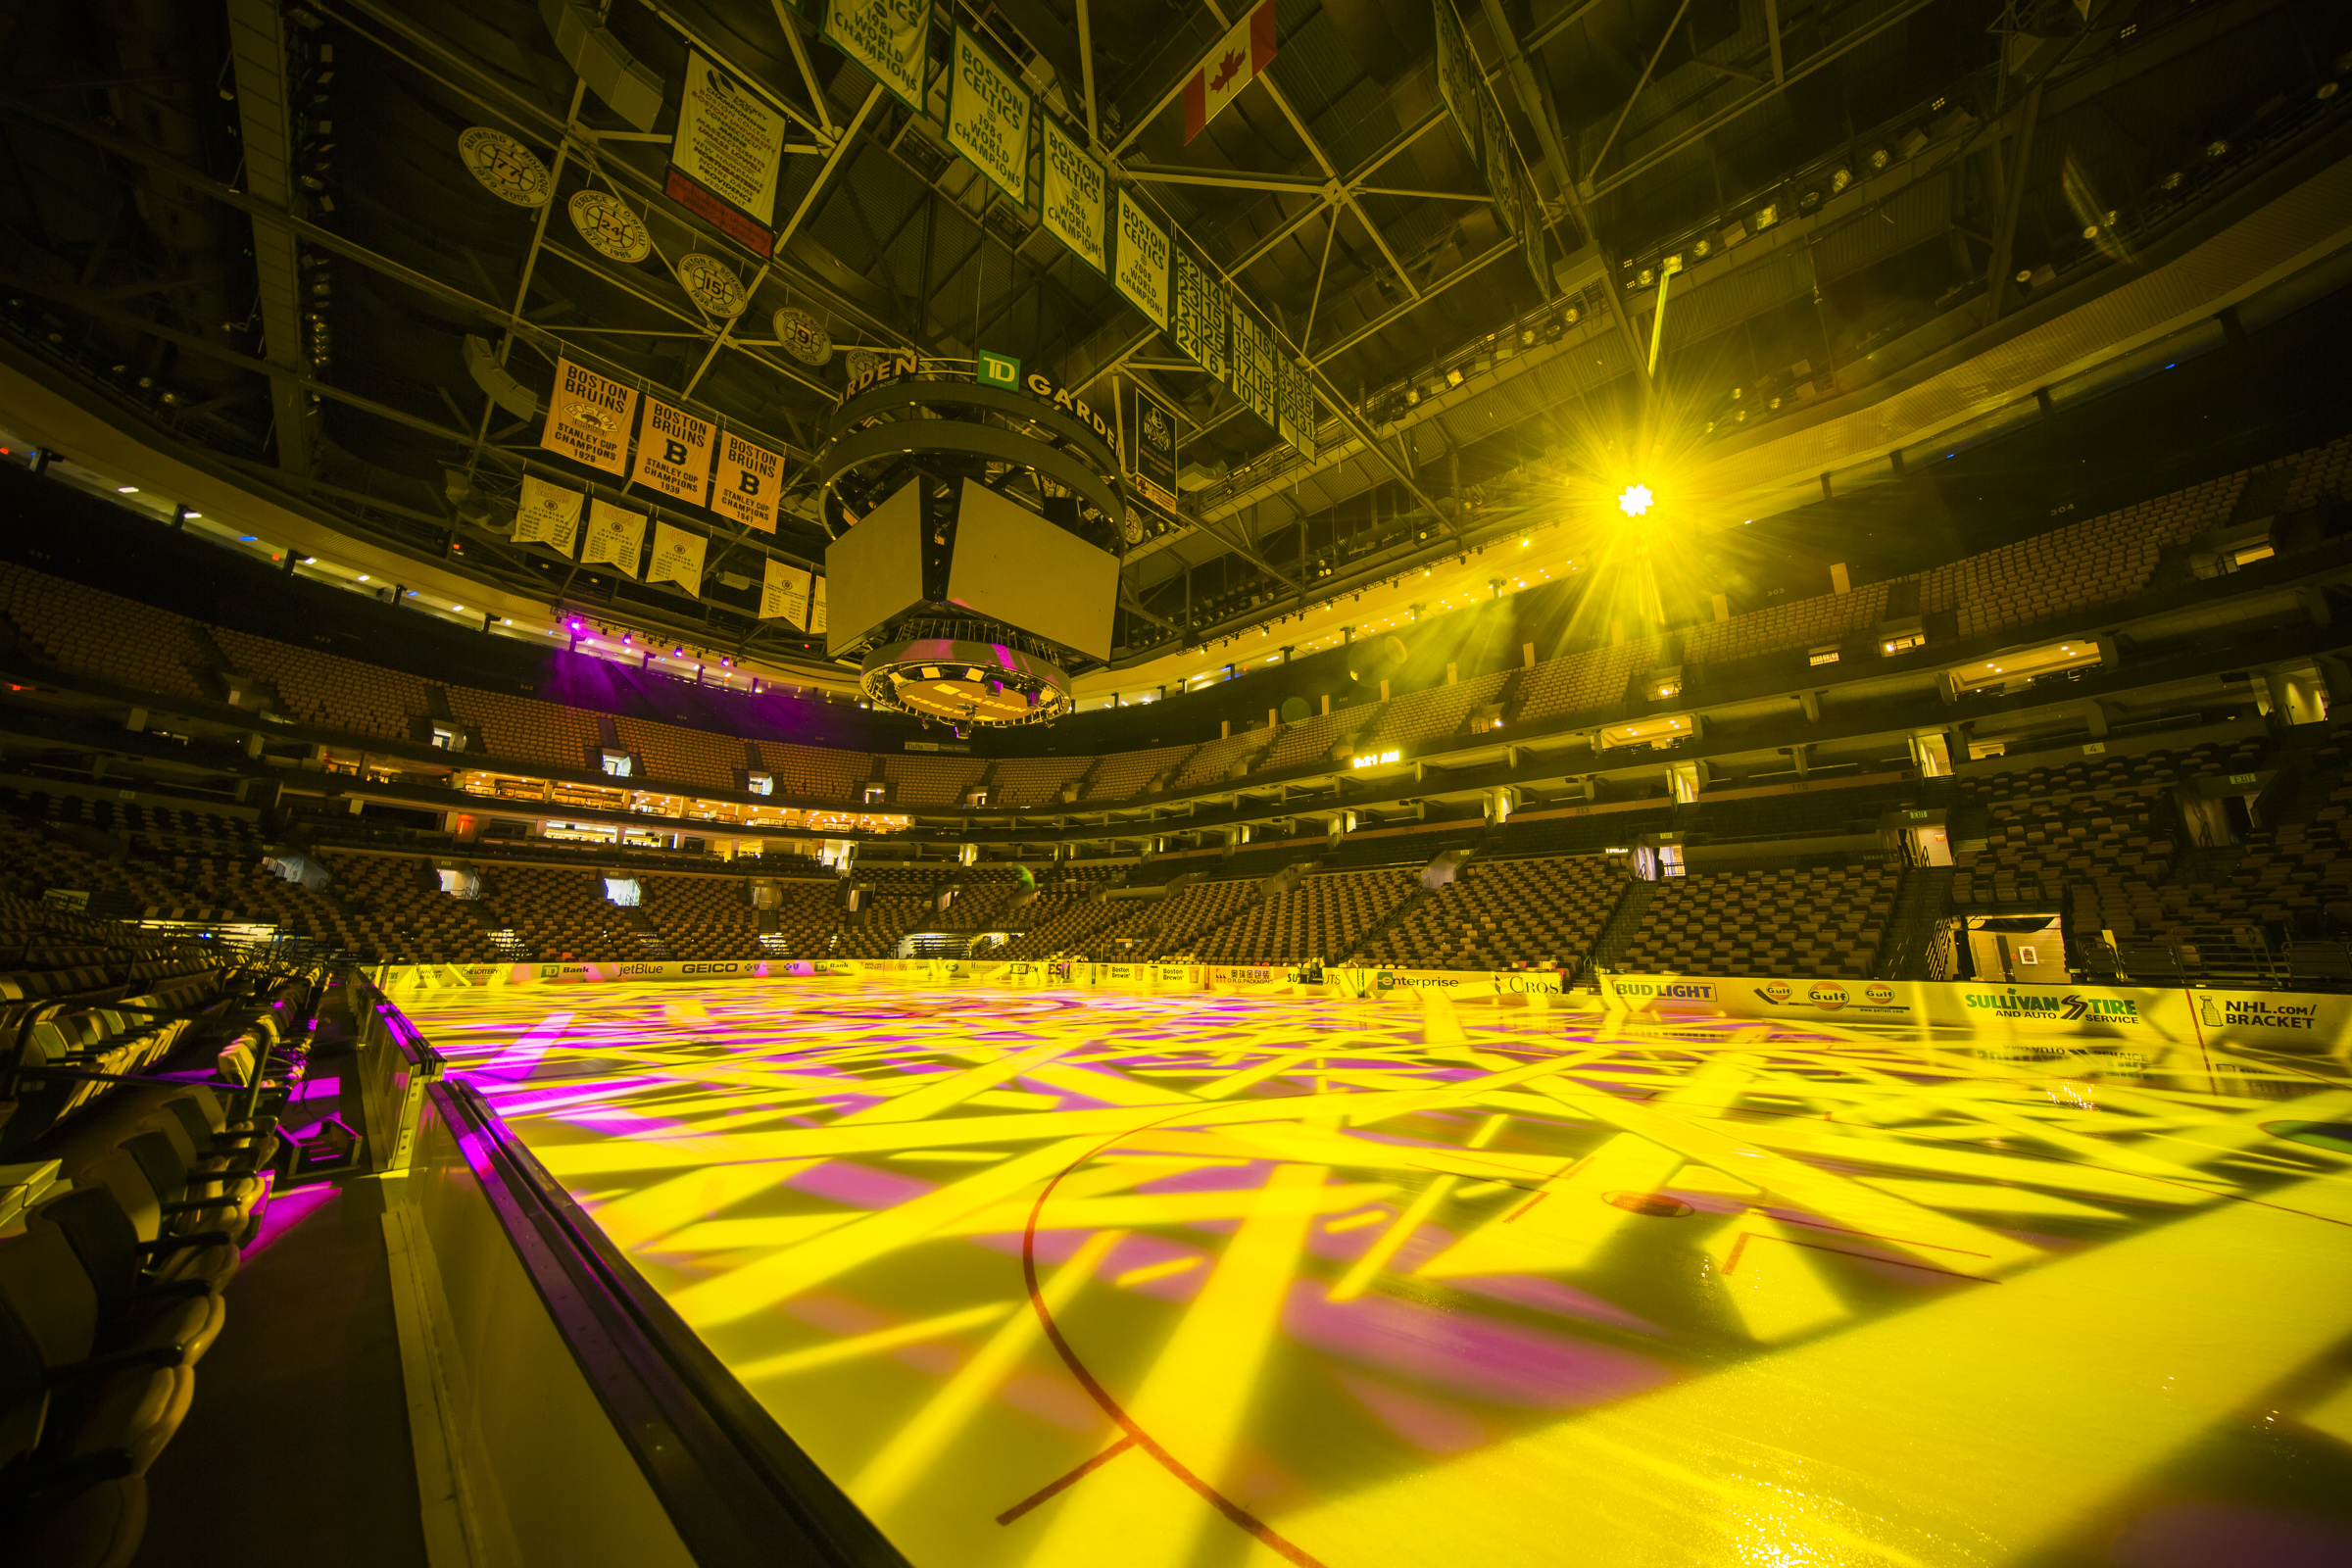 TD GARDEN - Port Lighting has been, and will continue to be, a trusted and reliable partner for us. They are consistent, proactive, professional, and responsive to our challenging and dynamic requests. The technical support and feedback Port has provided us through the years has been amazing.Andrew MacFadyenVice President of Facilities